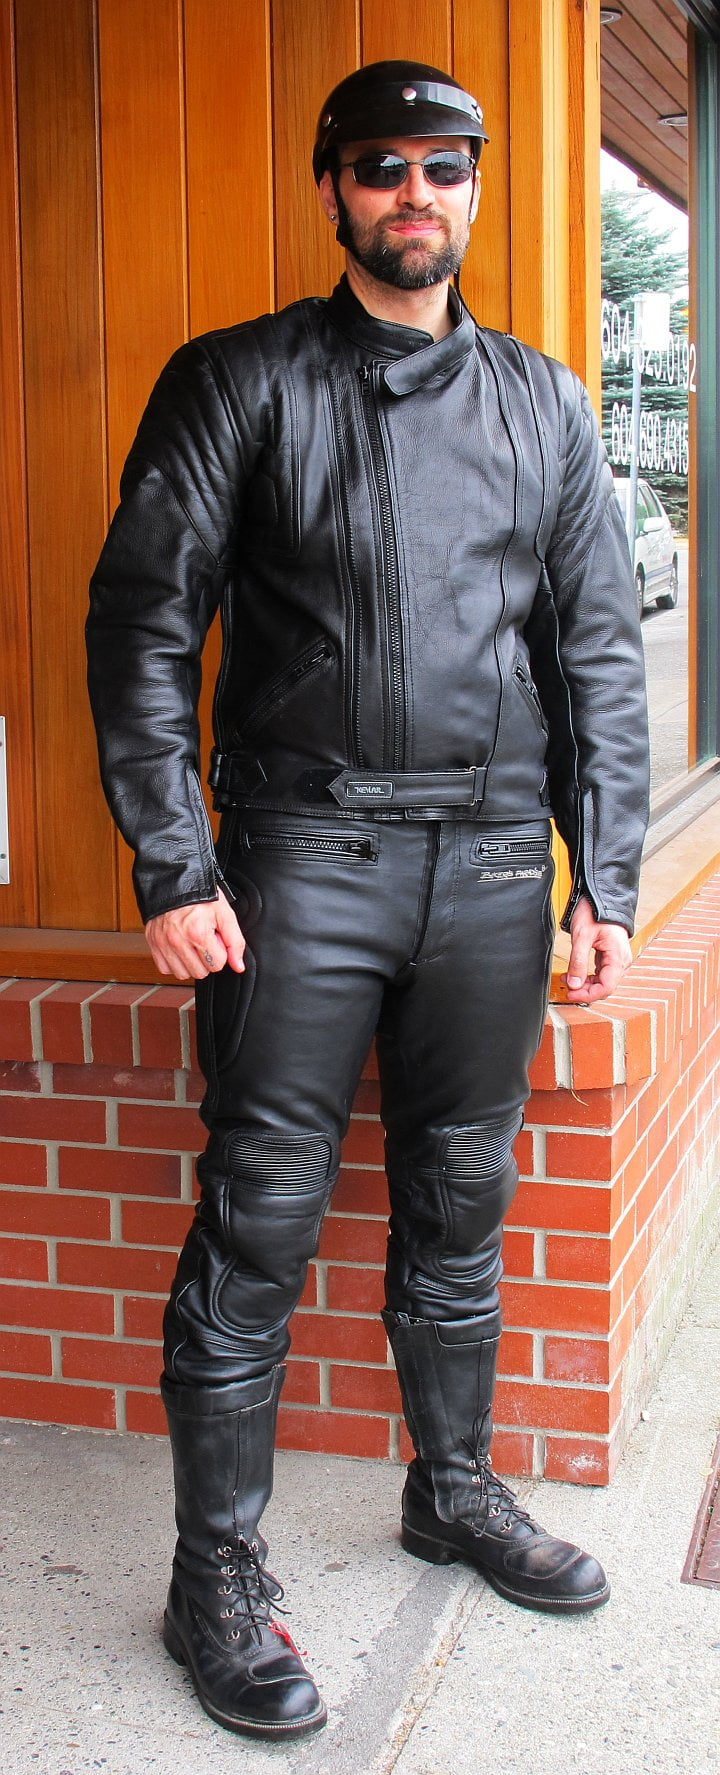 Two Piece Motorcycle Suit – Black Leather and Kevlar (and Royer Boots)